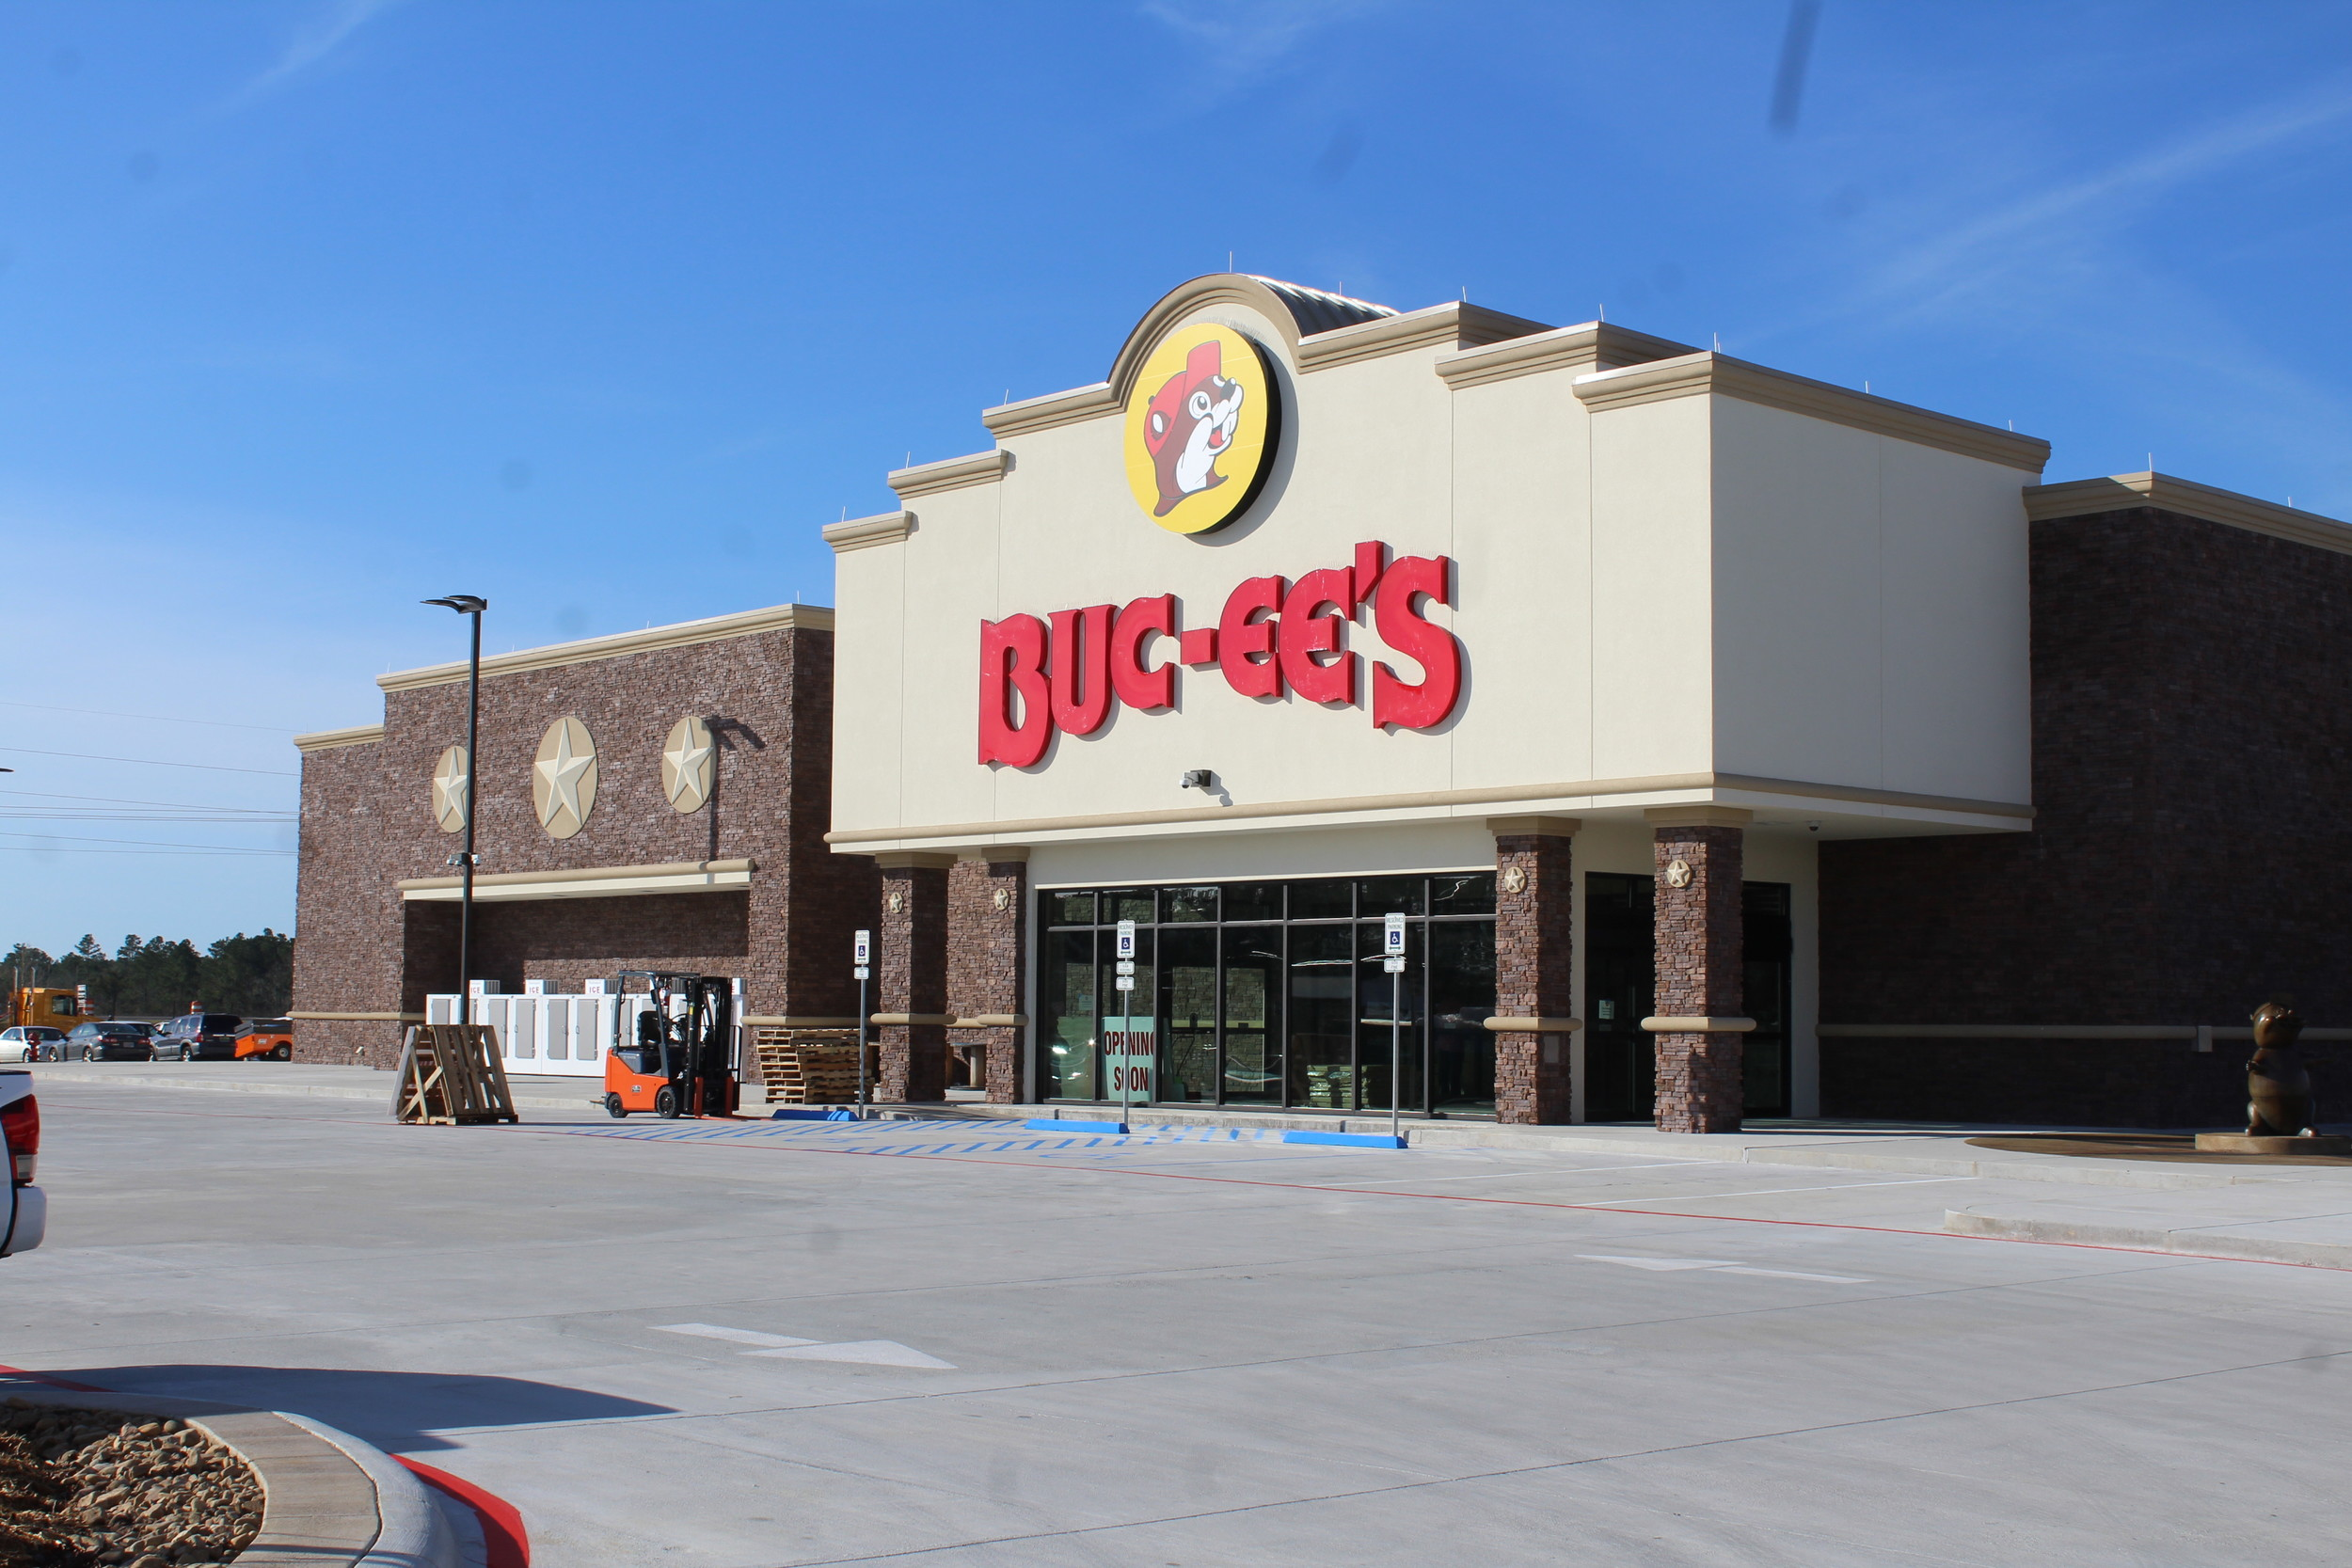 Buc-ee's Travel Center, located off of County Road 68 near the Baldwin Beach Express exit of Interstate 10 in Loxley, is set to open next week.